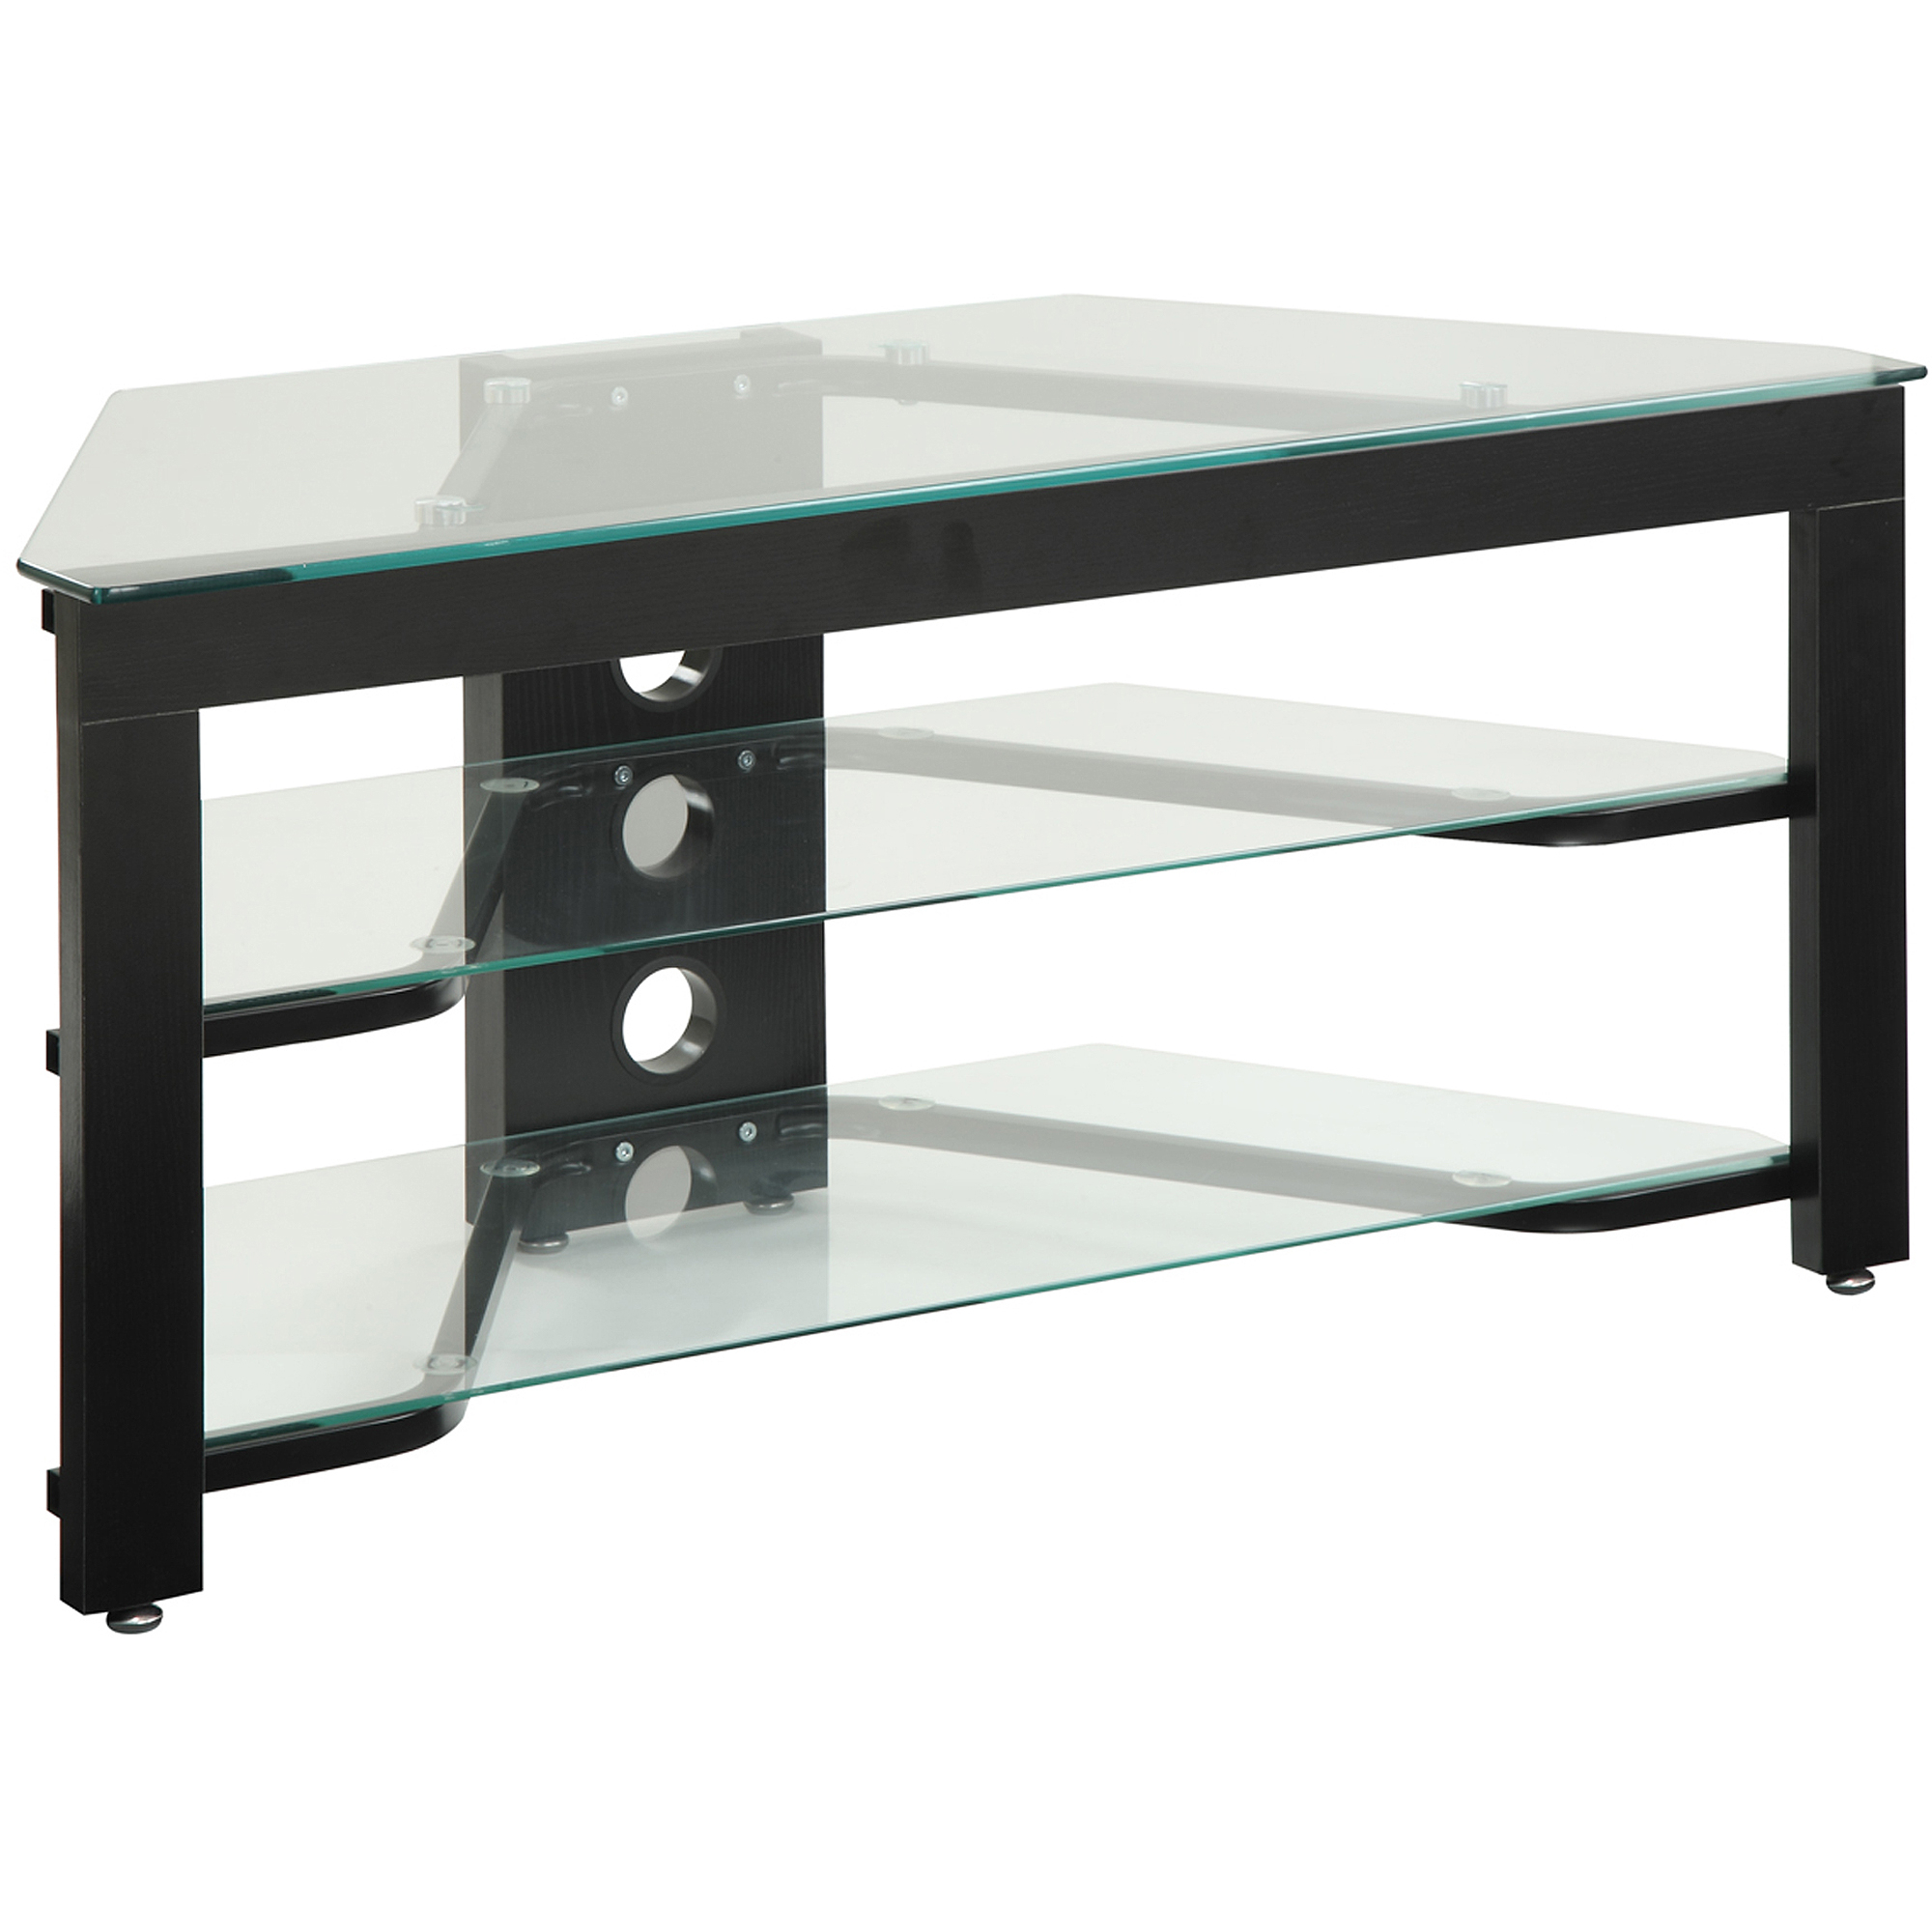 Black Glass Tv Stand (View 6 of 20)